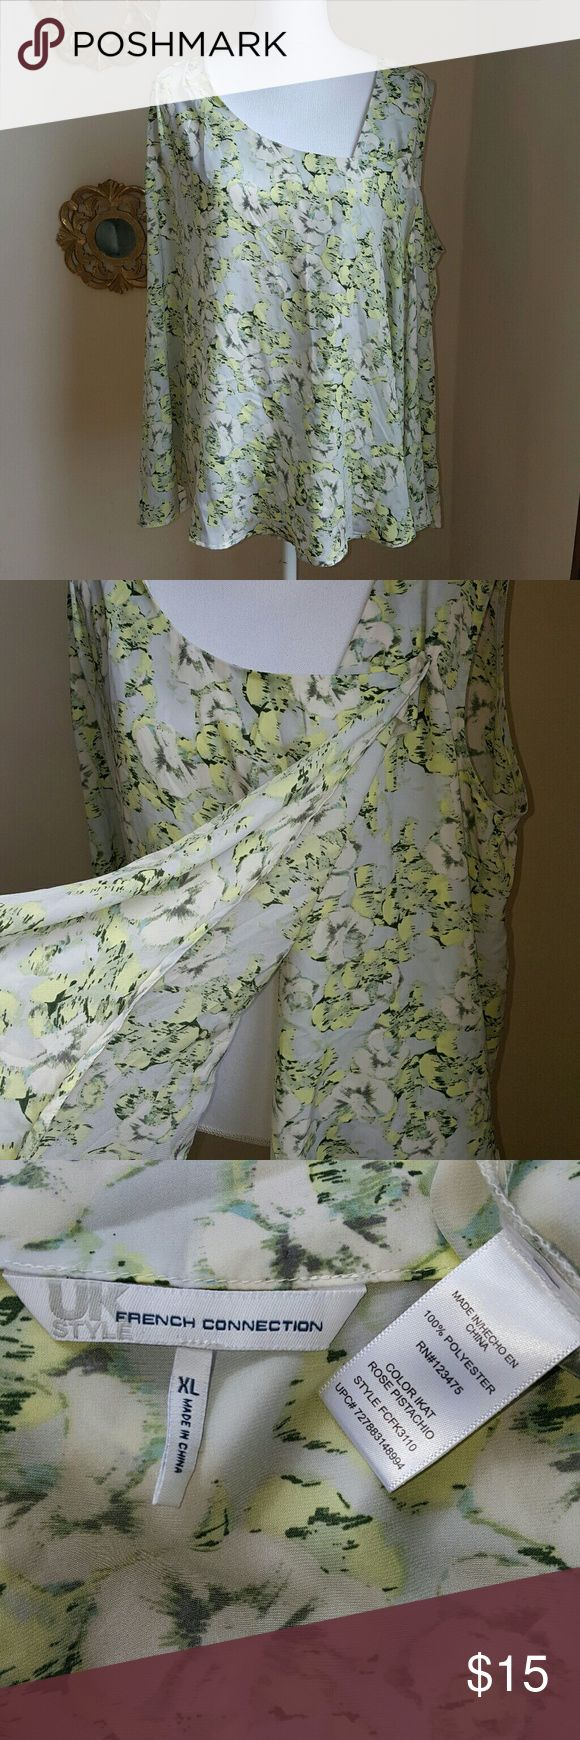 Selling this ⬇️FCUK Light, Floral, (button) Wrap Top on Poshmark! My username is: amichellev. #shopmycloset #poshmark #fashion #shopping #style #forsale #French Connection #Tops